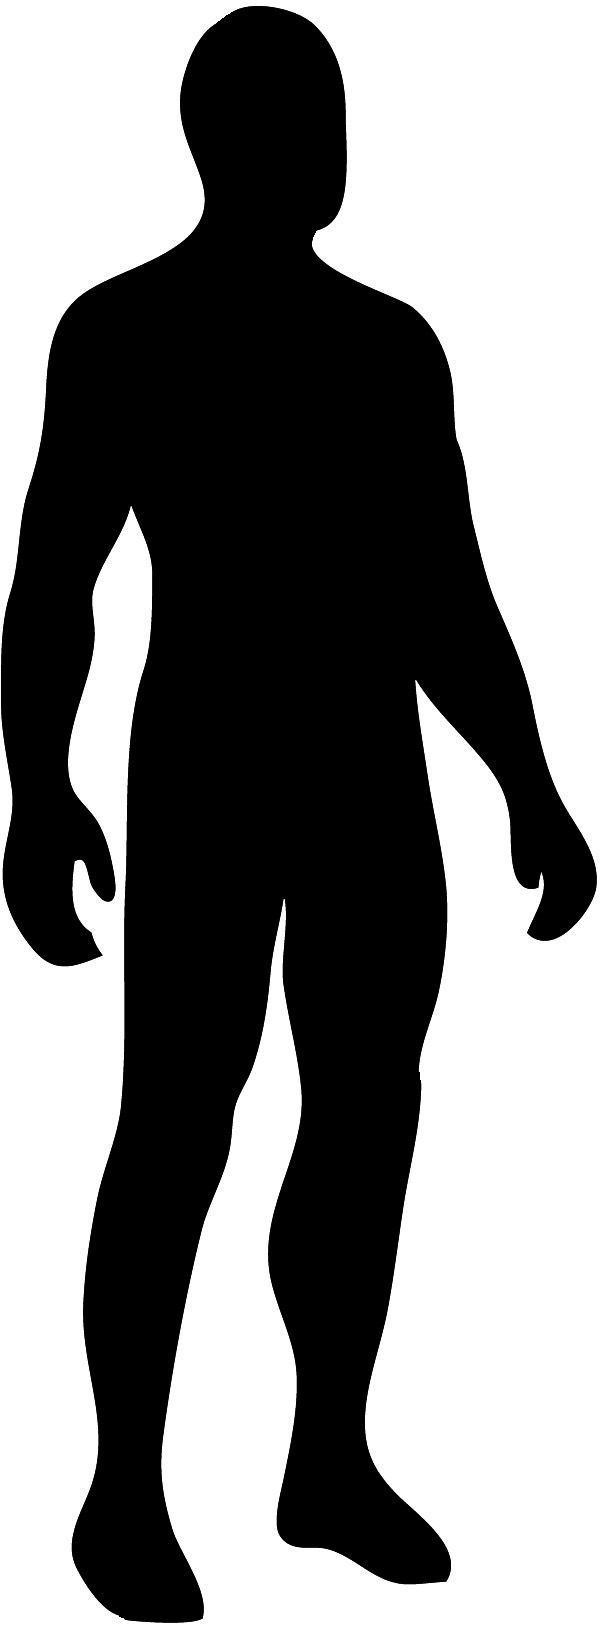 human silhouette clipart stams stencils masks pinterest rh pinterest com human clipart heart human clipart body